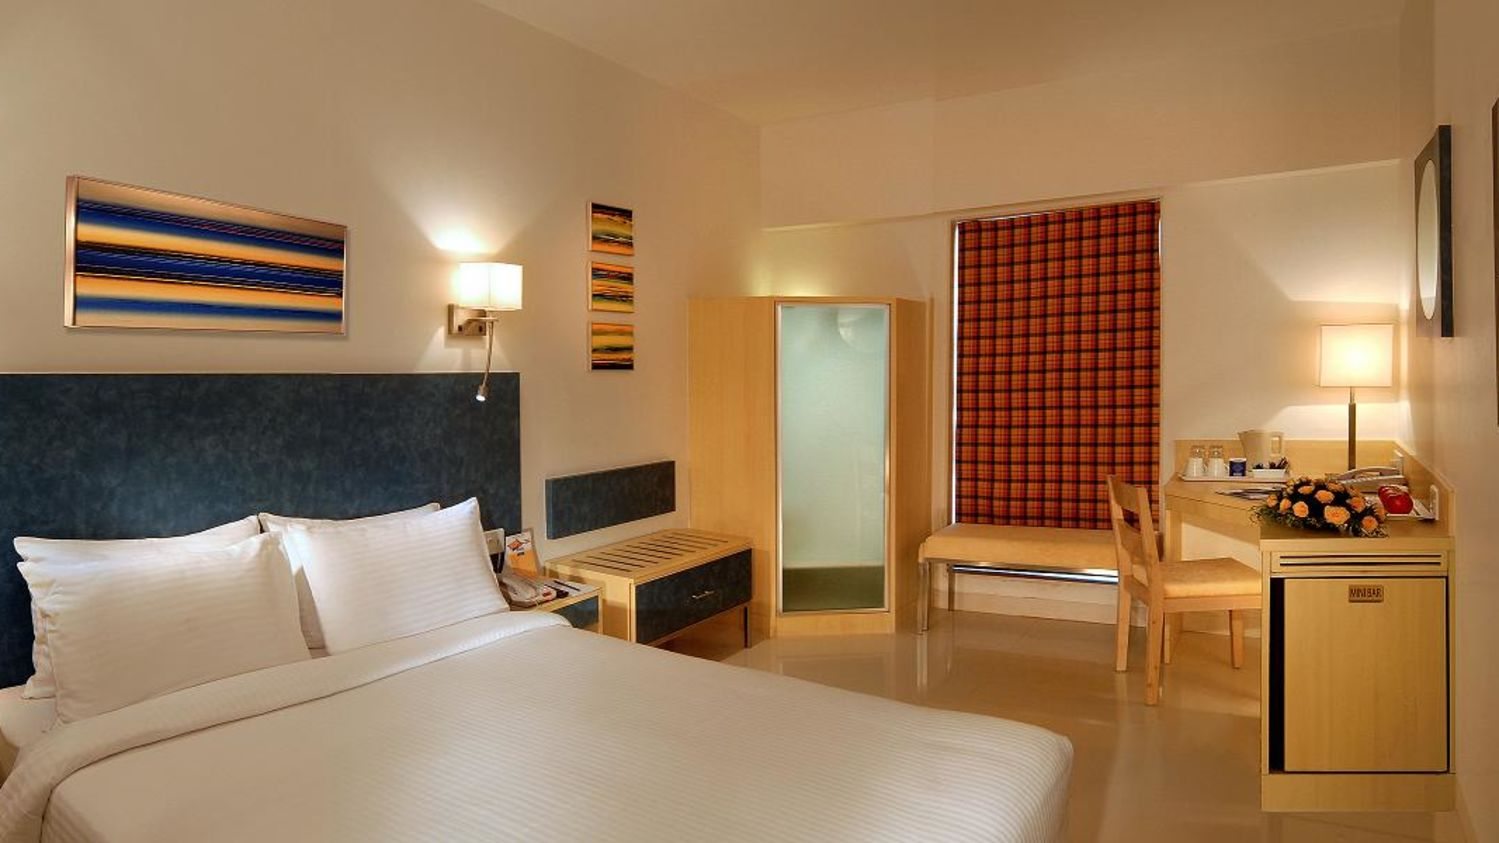 Suites at Aditya Hometel Hyderabad,  hotels in hyderabad 5